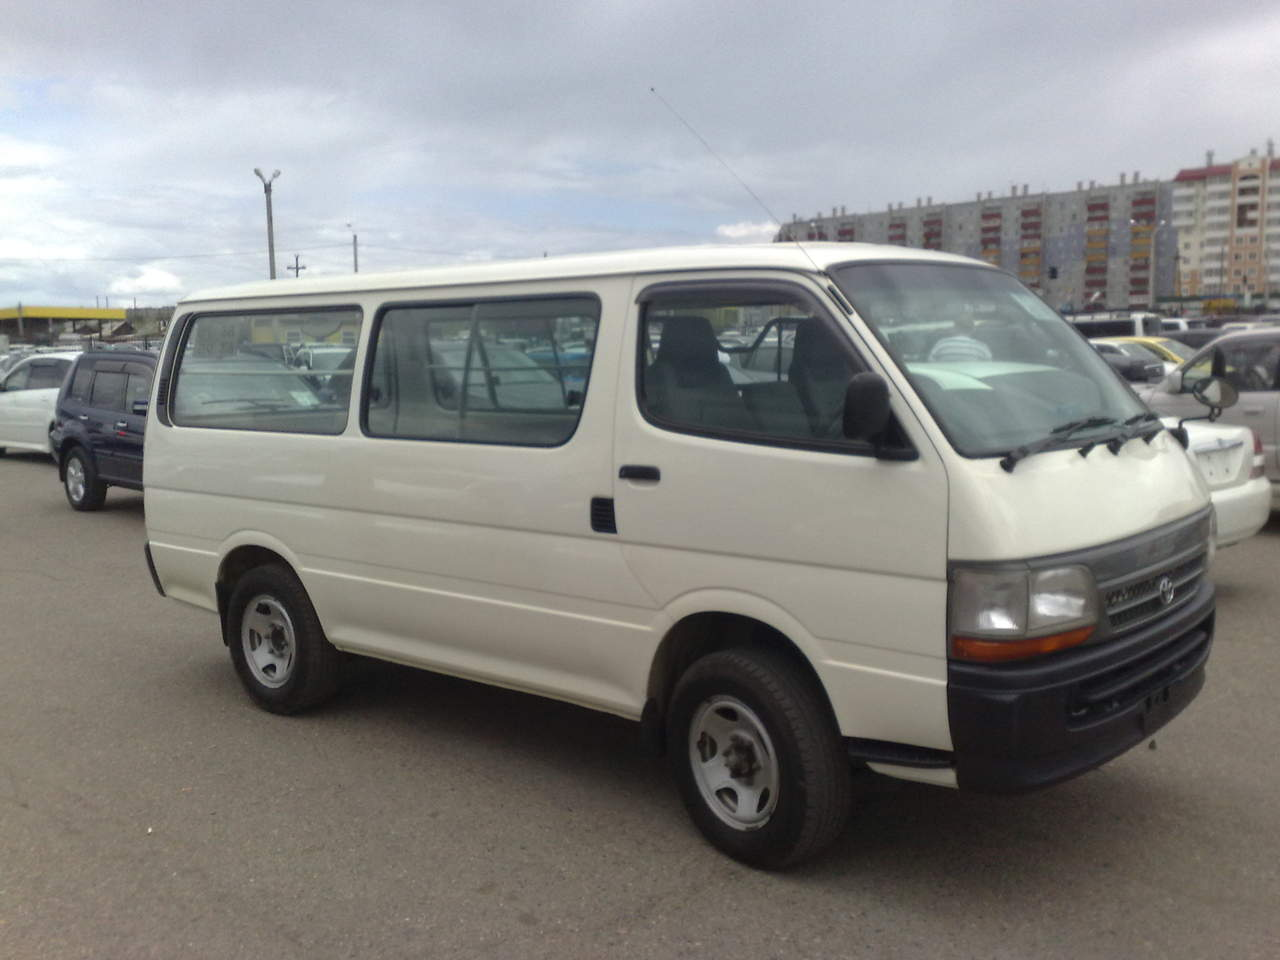 Model  Specifications And Equipment Have Been Sourced From RedBook And Are Based On Manufacturer Standard Specifications Actual Specifications For This Vehicle May Differ, Please Confirm With The Seller  Specifications And Equipment Have